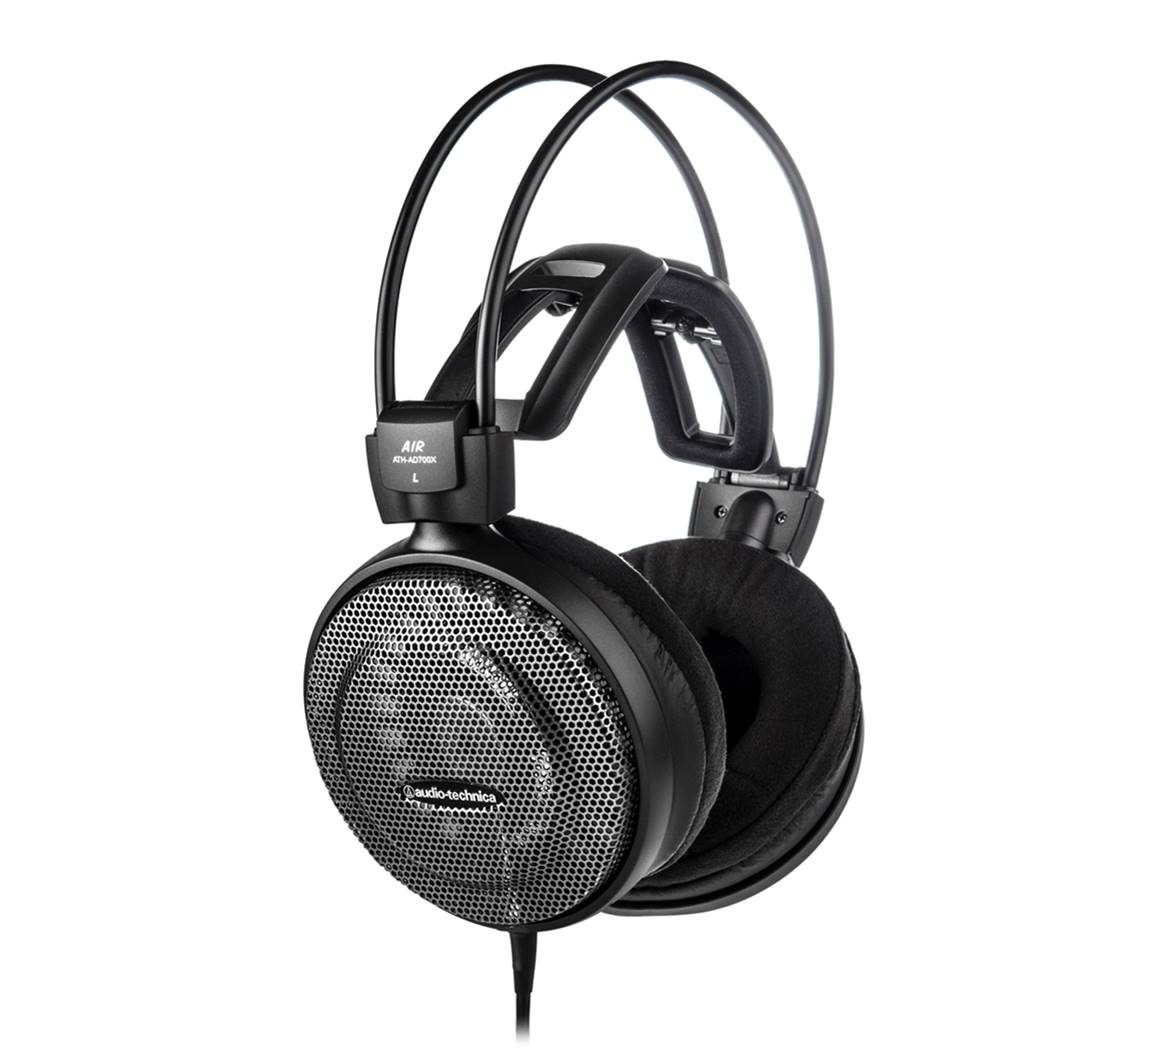 Audio-Technica ATH-AD700X Headphones